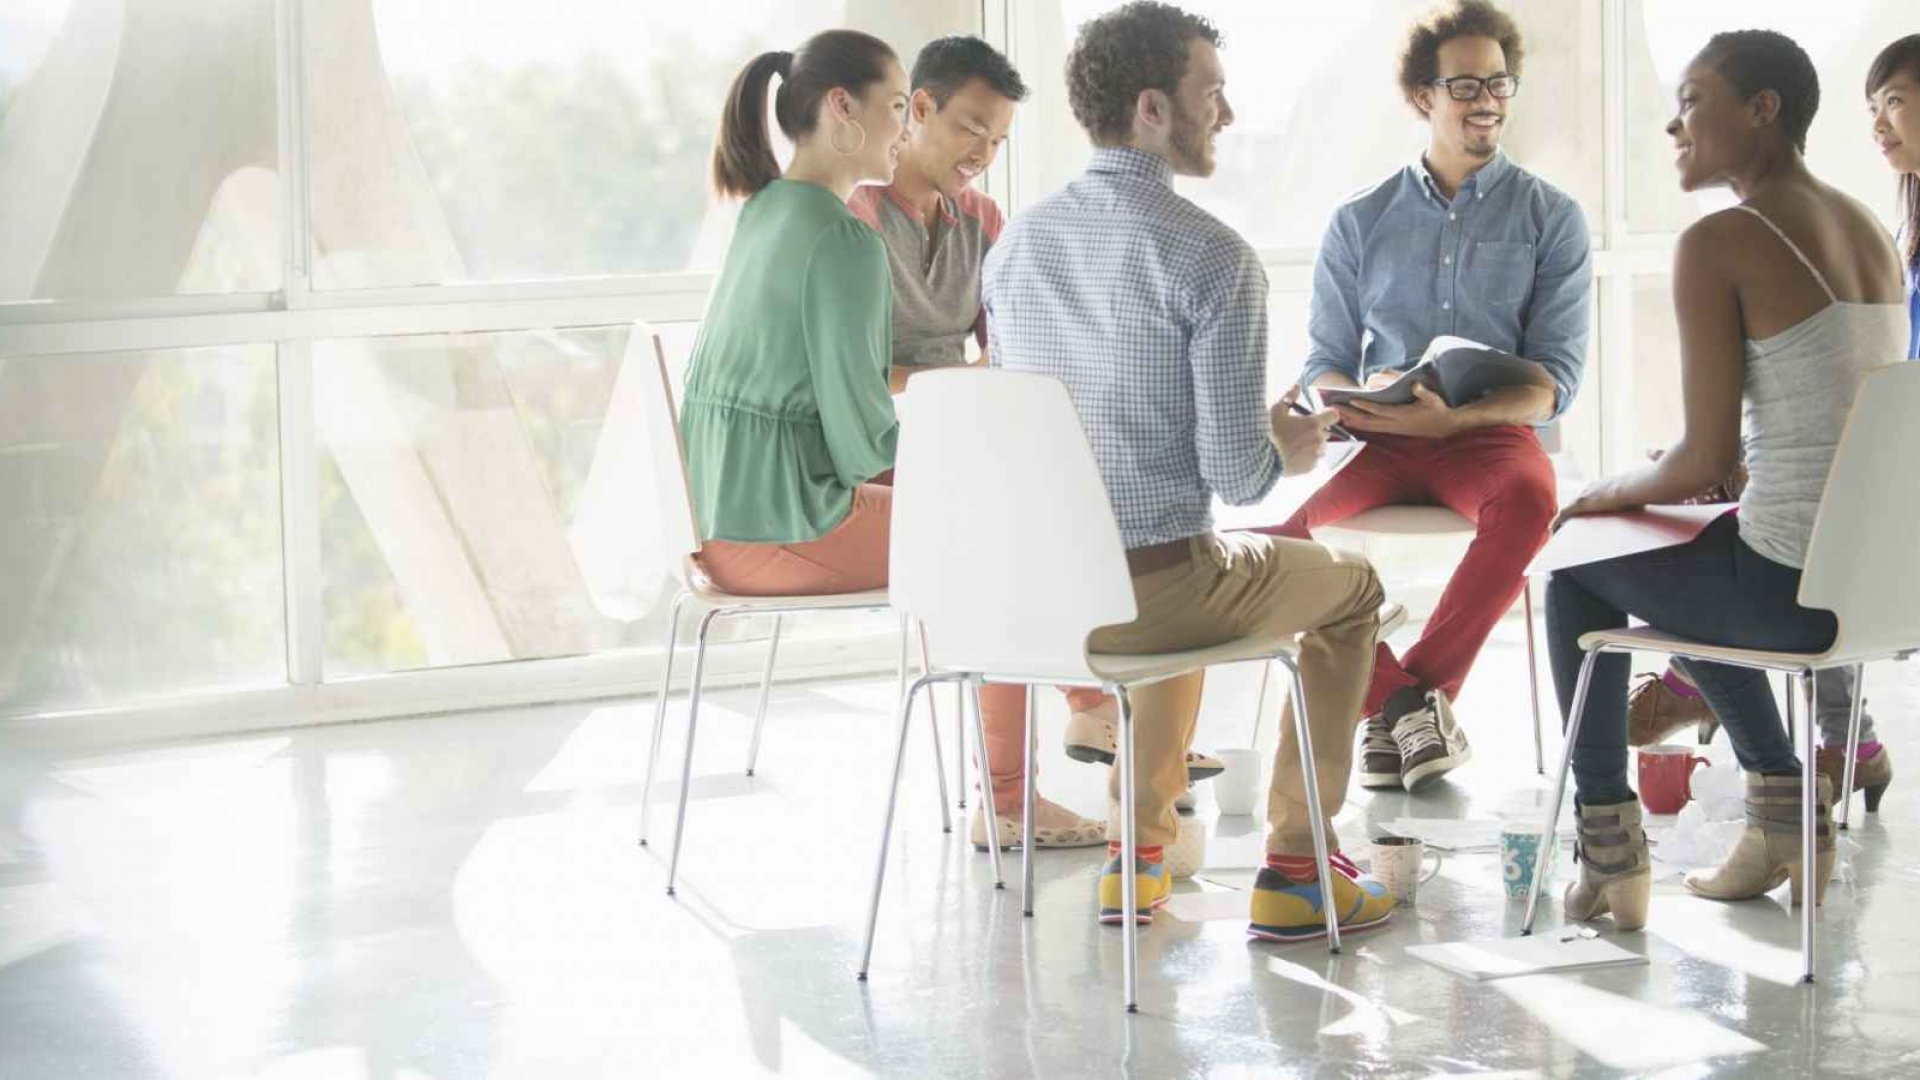 6 Steps to Reaching and Coaching Up Underperforming Employees